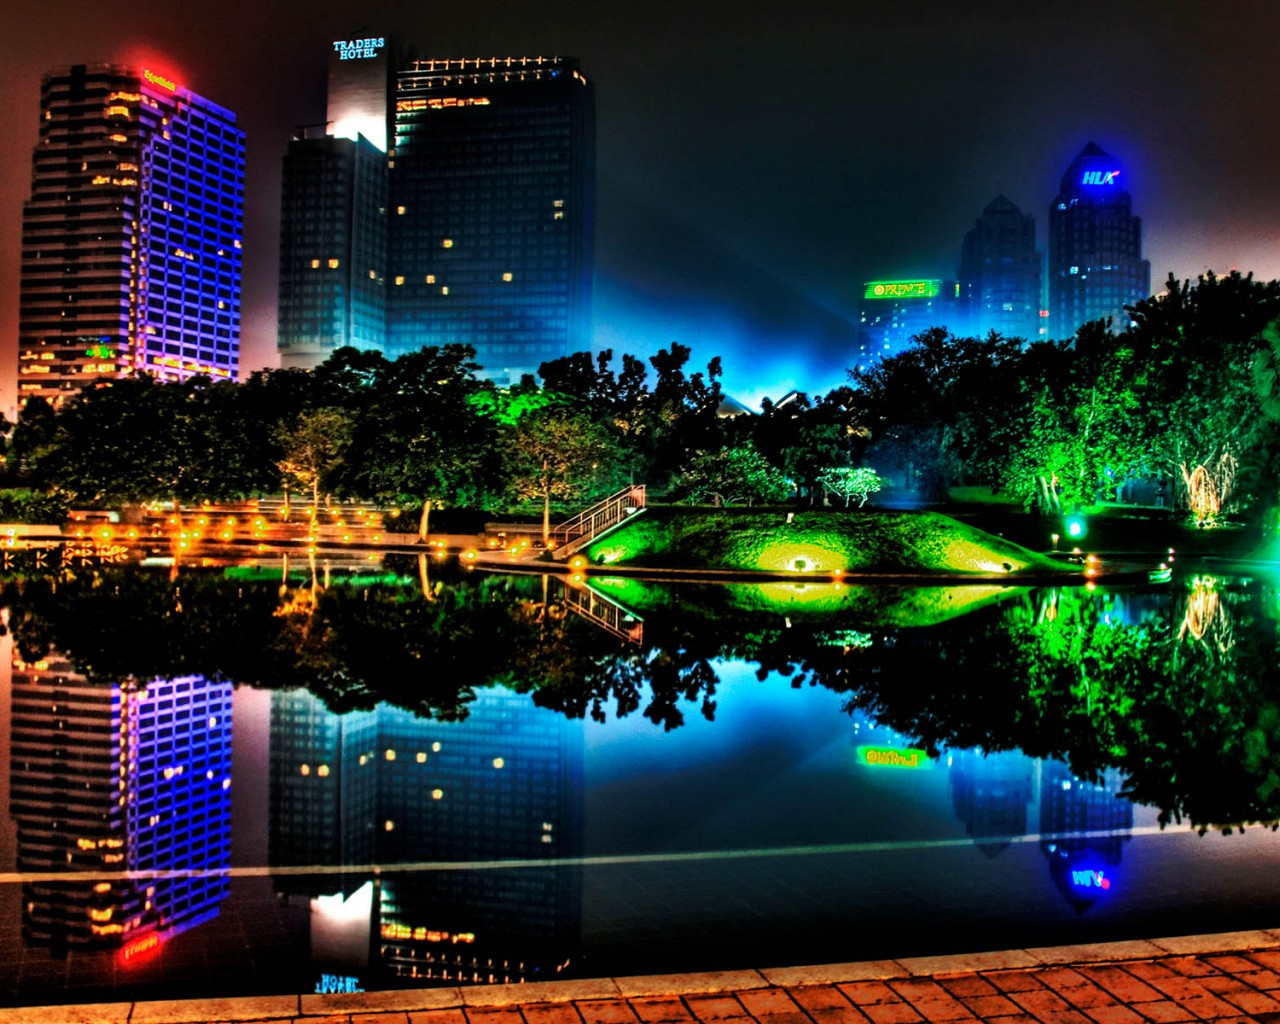 1280x1024 Colorful night lights desktop PC and Mac wallpaper 1280x1024